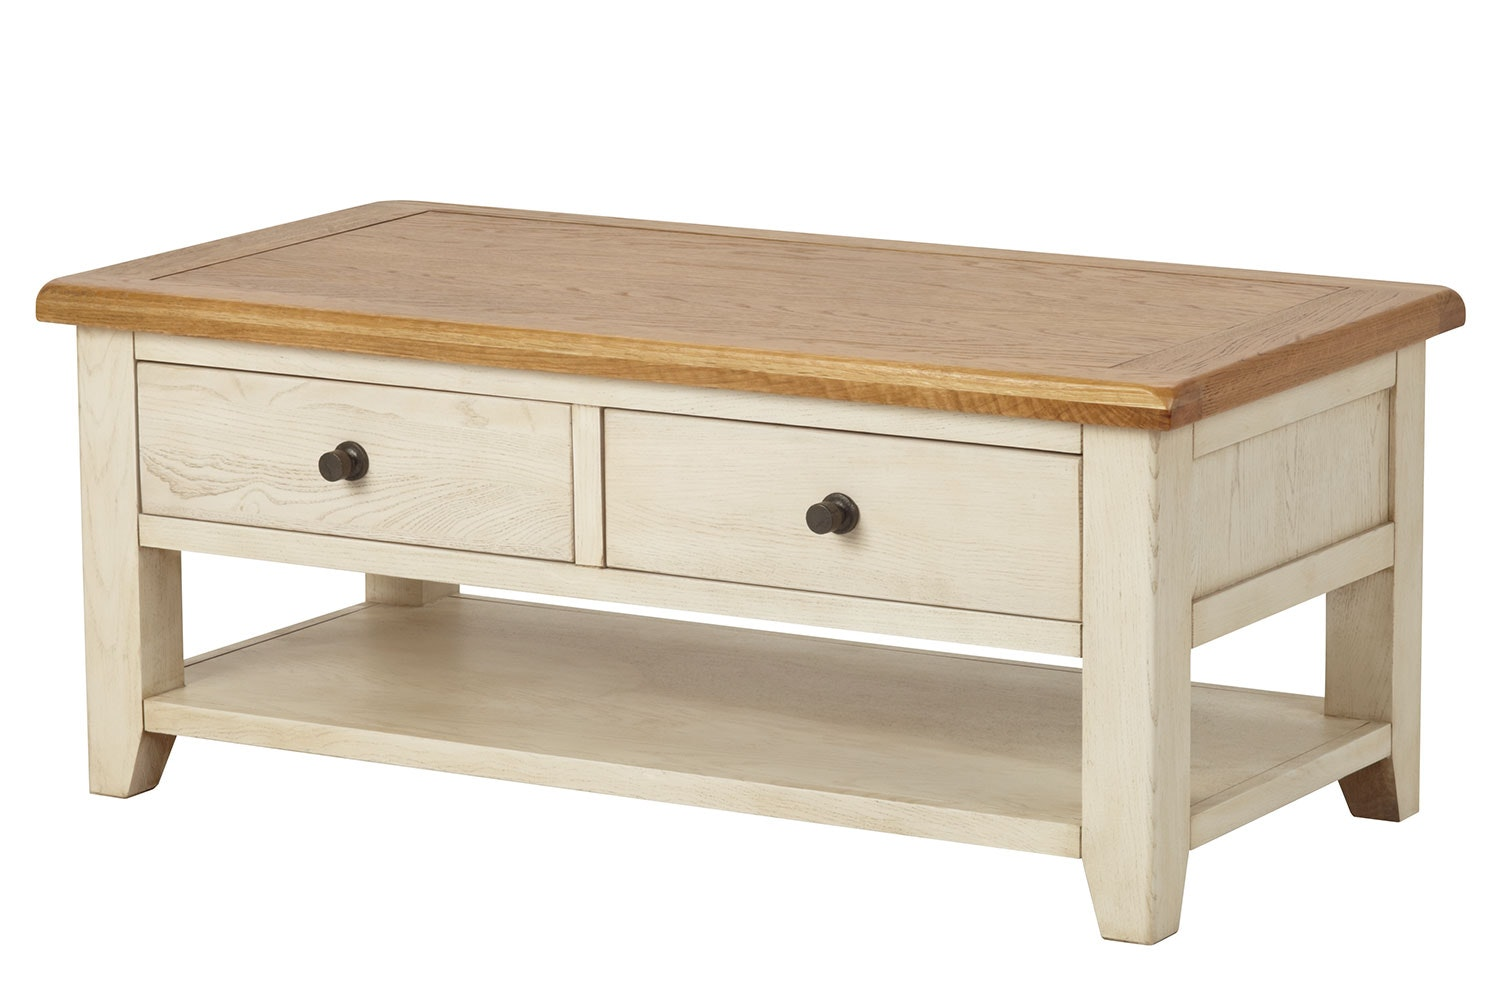 Mansfield Coffee Table By Debonaire Furniture Harvey Norman New